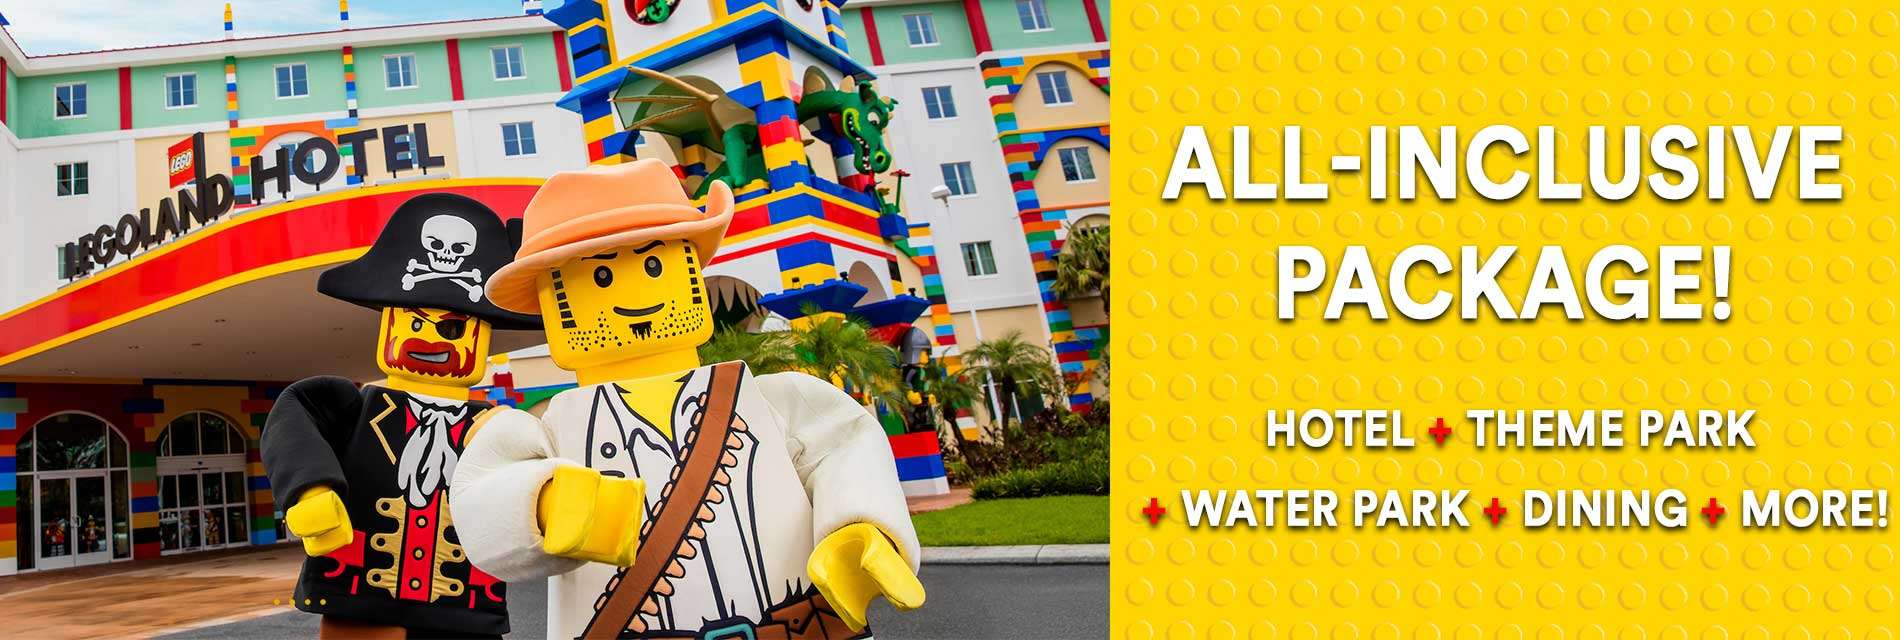 LEGOLAND All-Inclusive Package - Book